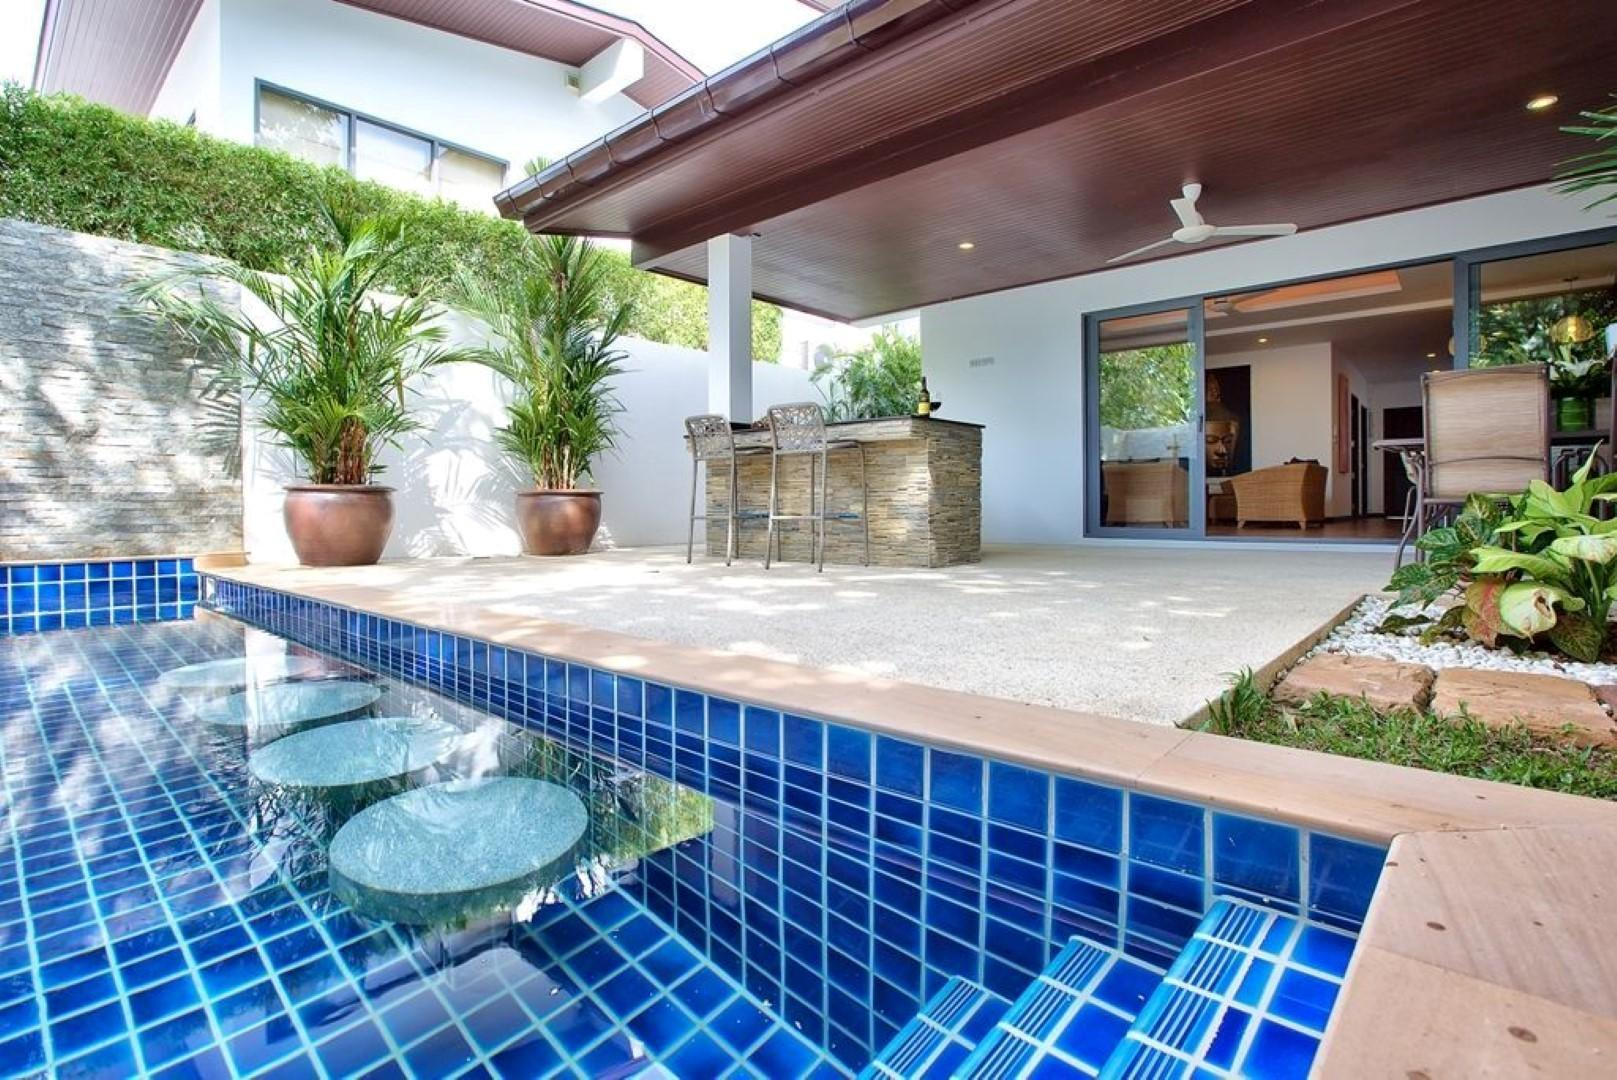 3 BEDROOM VILLA With PRIVATE POOL   CLOSE TO BEACH